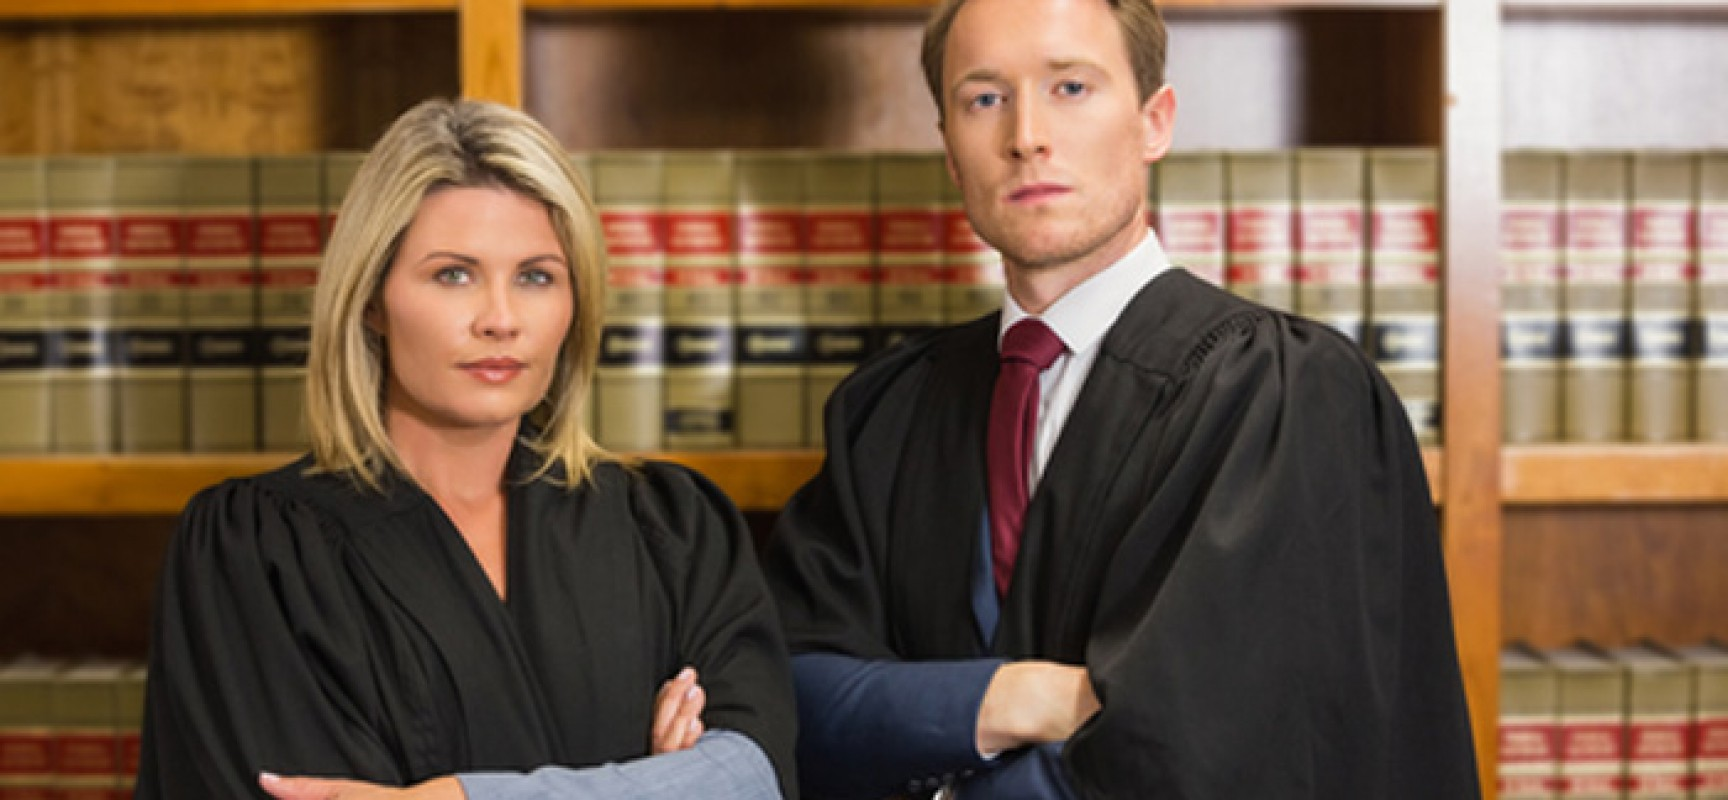 Common Misconceptions About Lawyers You Should Not Believe